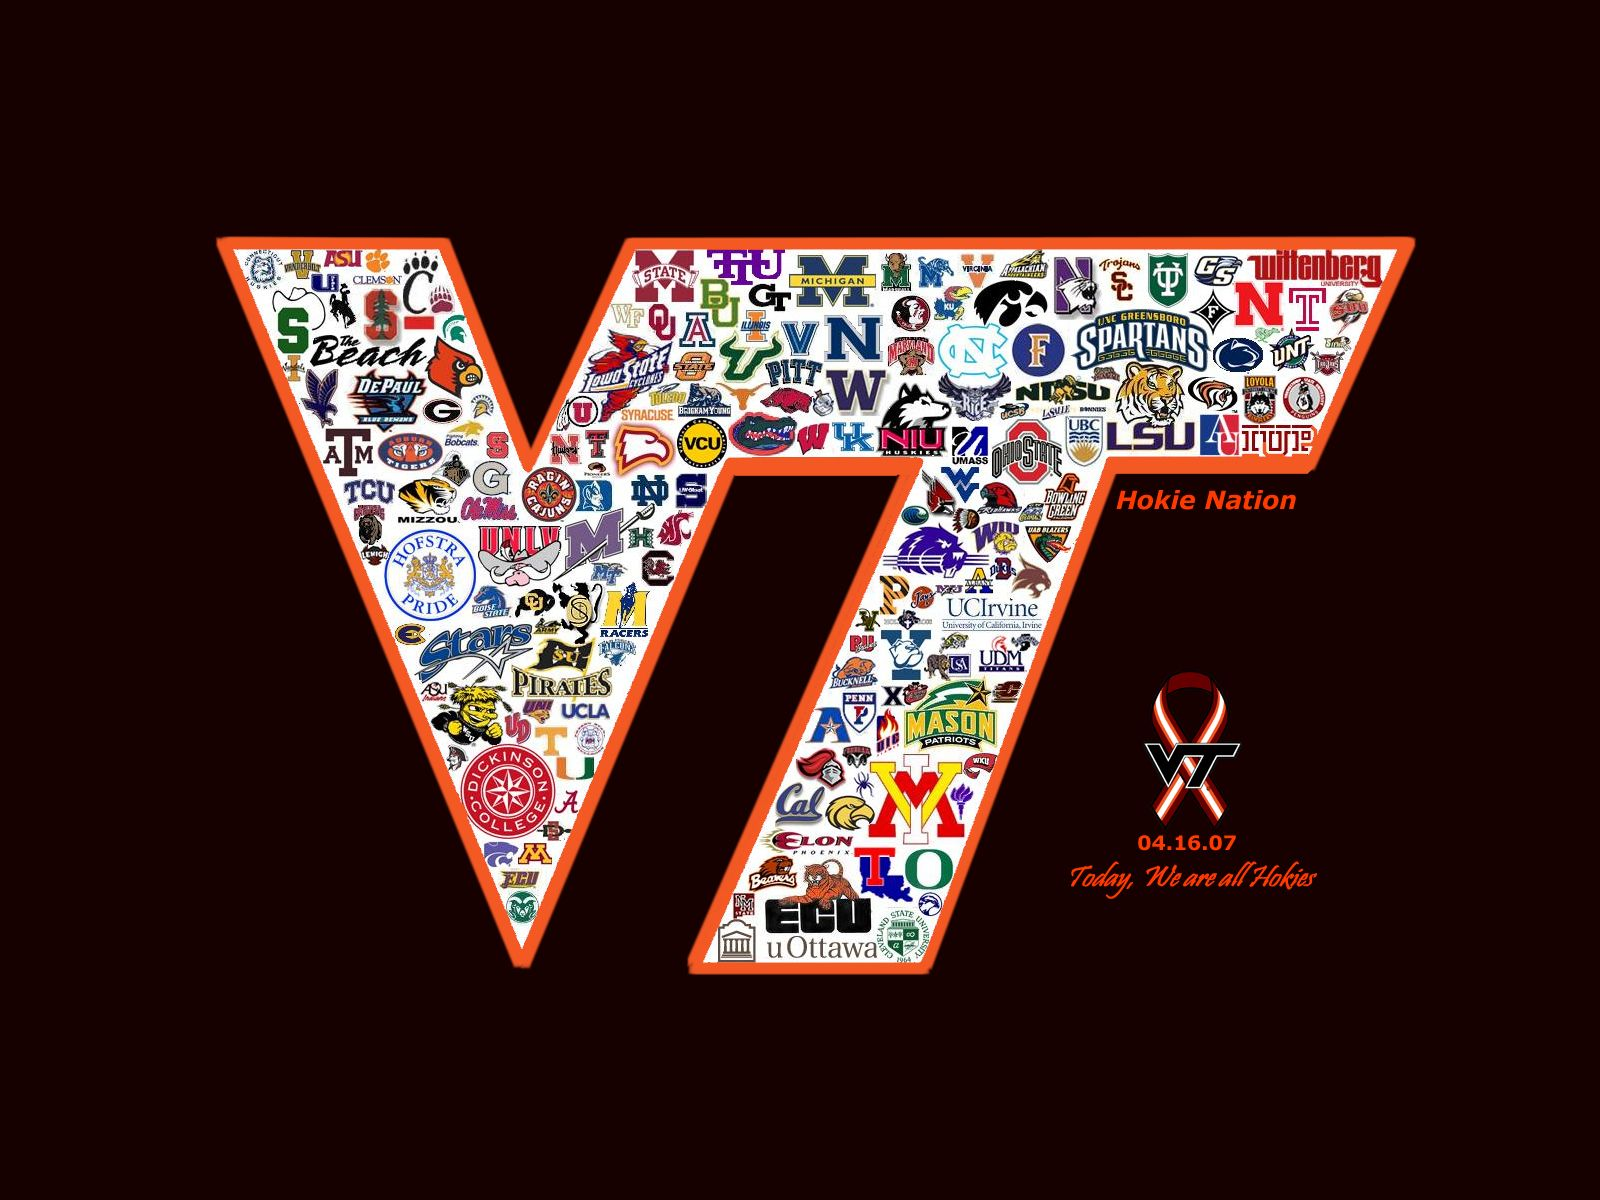 Never Forget I Know It S A Bit Late But Better Late Than Never 4 16 07 Only 5 Years Ago Hokies Va Tech Virginia Tech Hokies